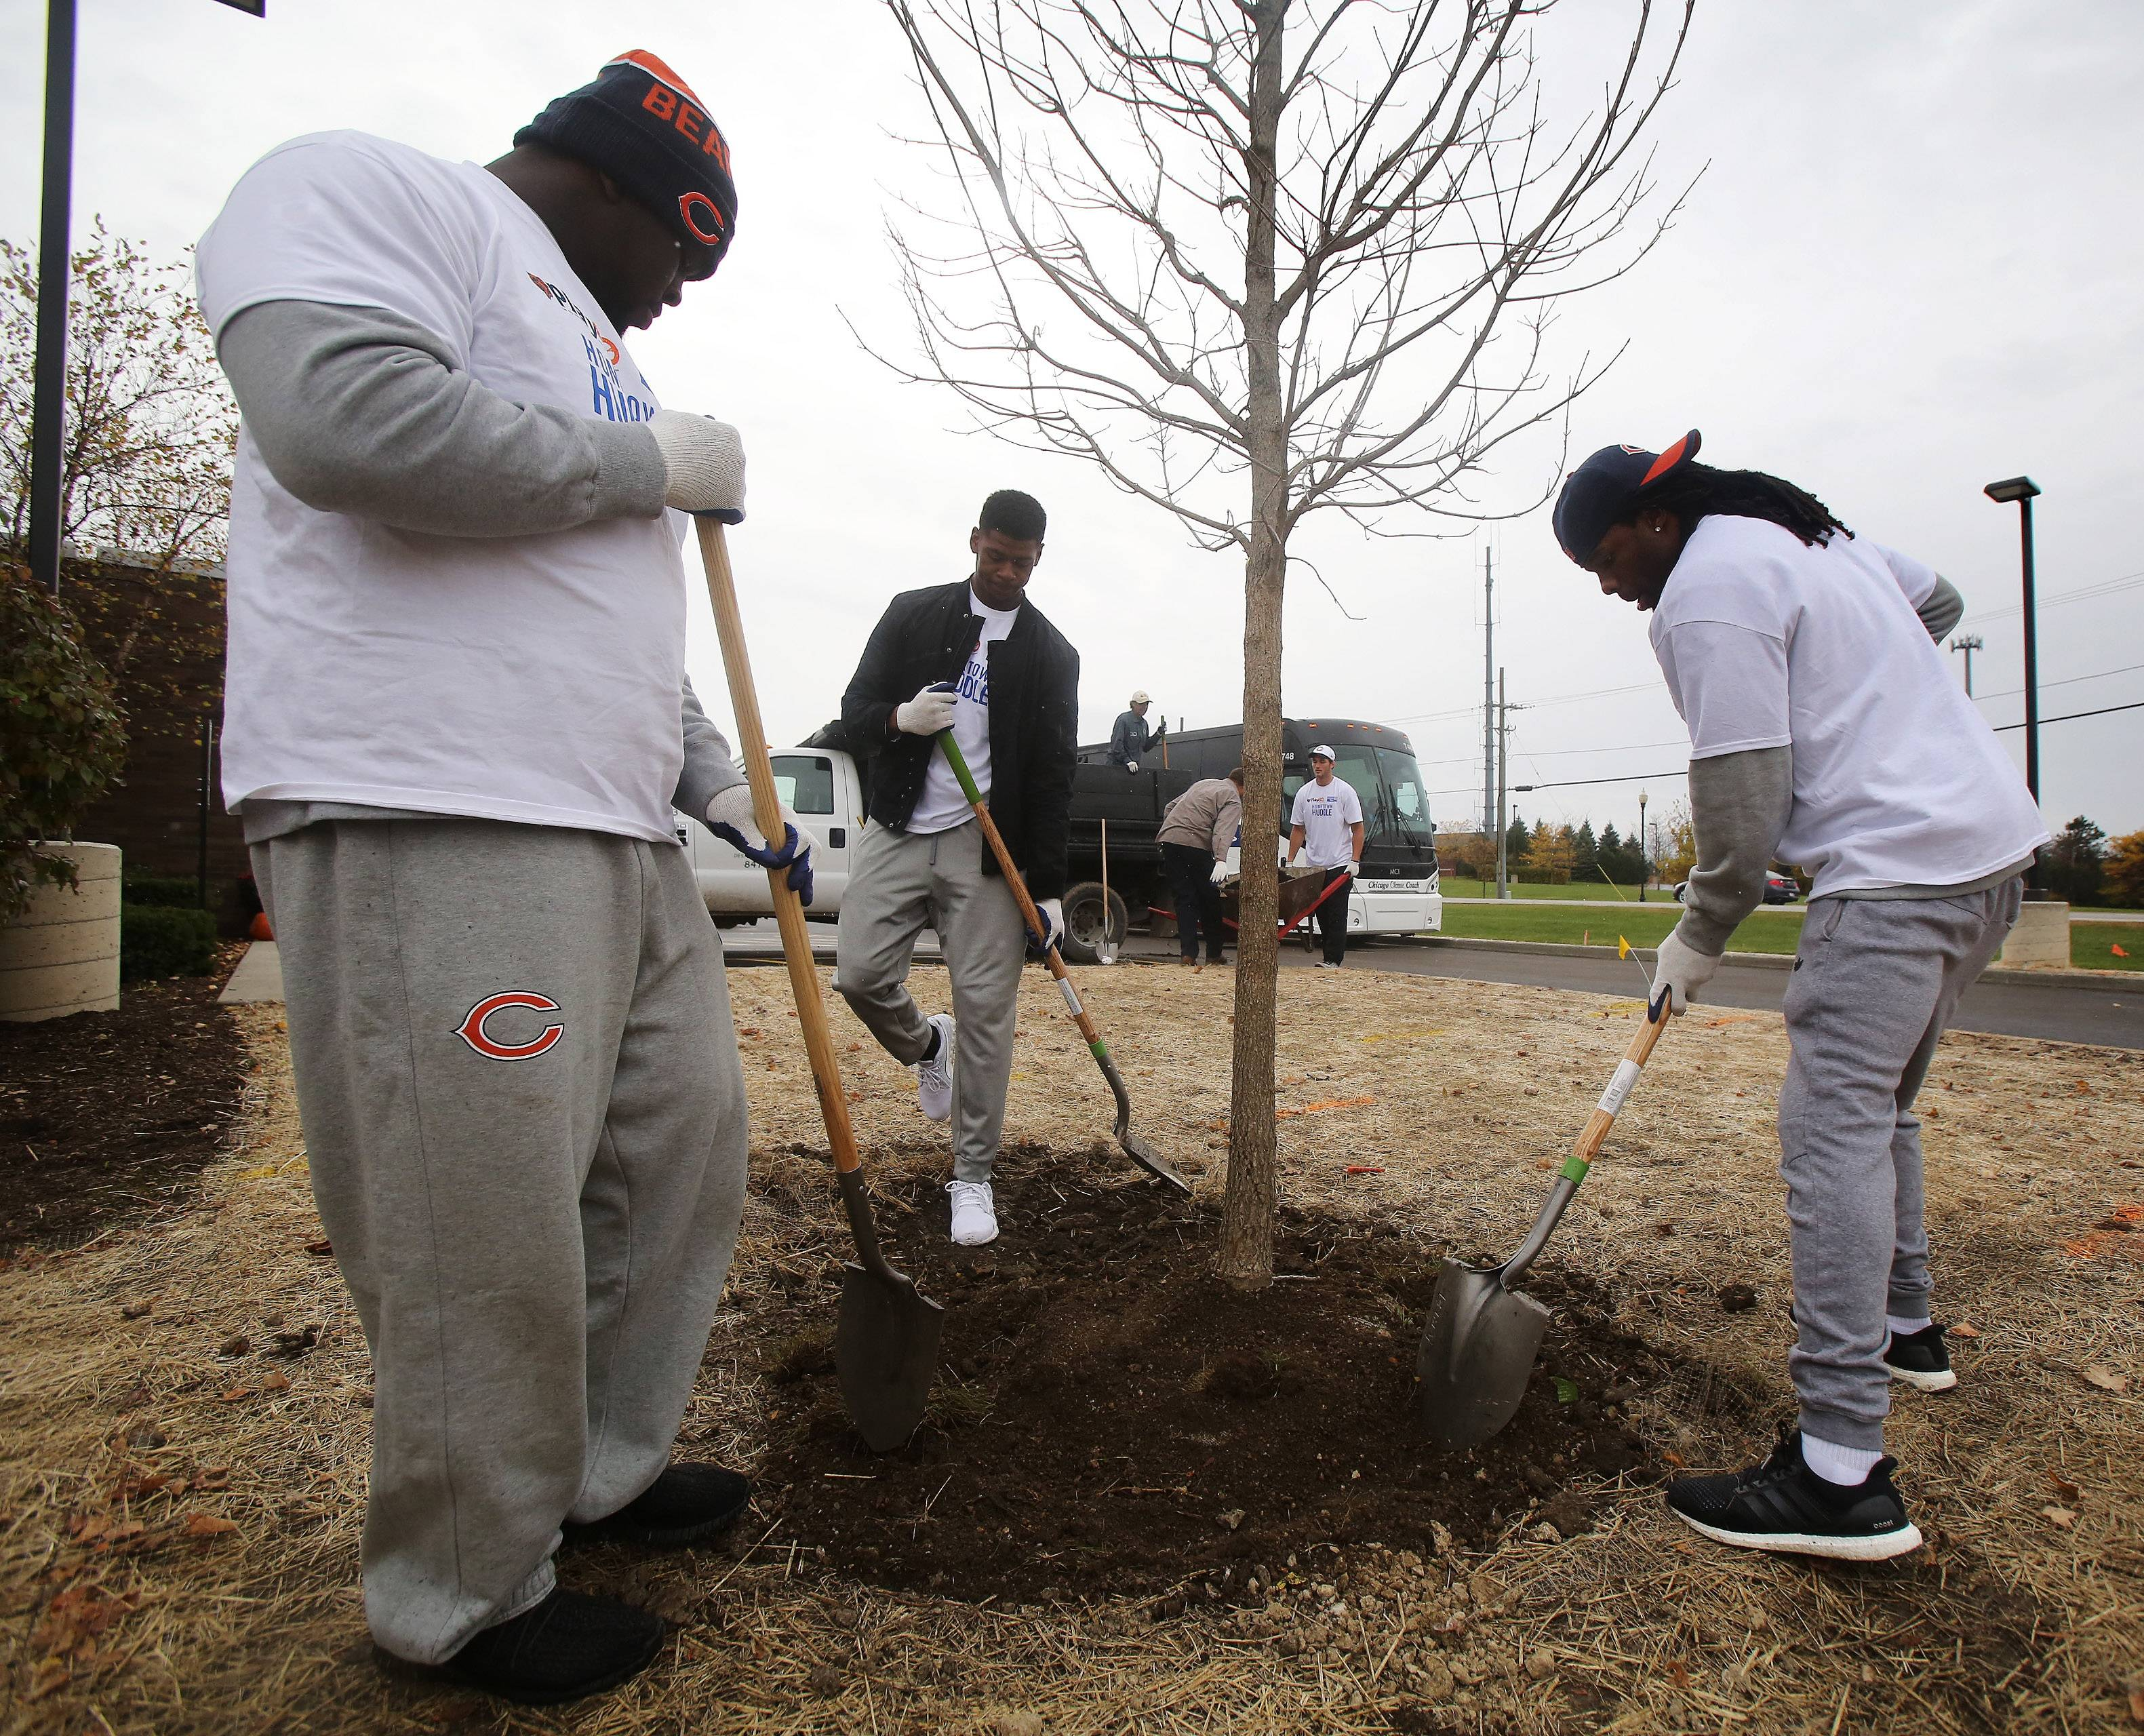 Chicago Bears rookies Eddie Goldman, left, Cameron Meredith and Kevin White plant a tree at the Lake County Children's Advocacy Center in Gurnee on Tuesday. The players worked with staff and landscapers to create Chicago Bears' Play Zones in conjunction with United Way Hometown Huddle.